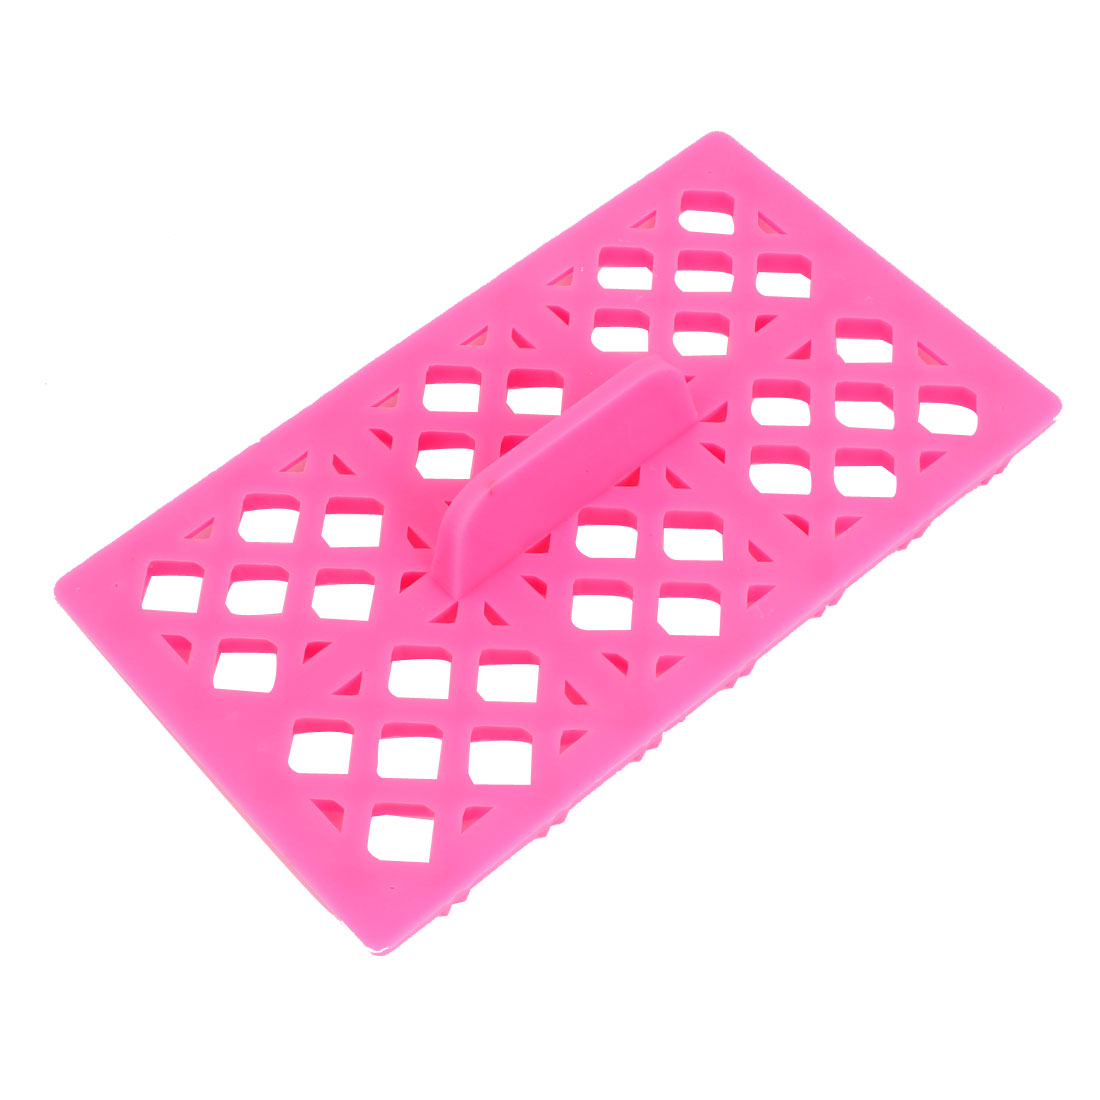 Fondant Cake Cookie Biscuit Cutter Bowtie Design Stamp Impress Mold Tool Fuchsia